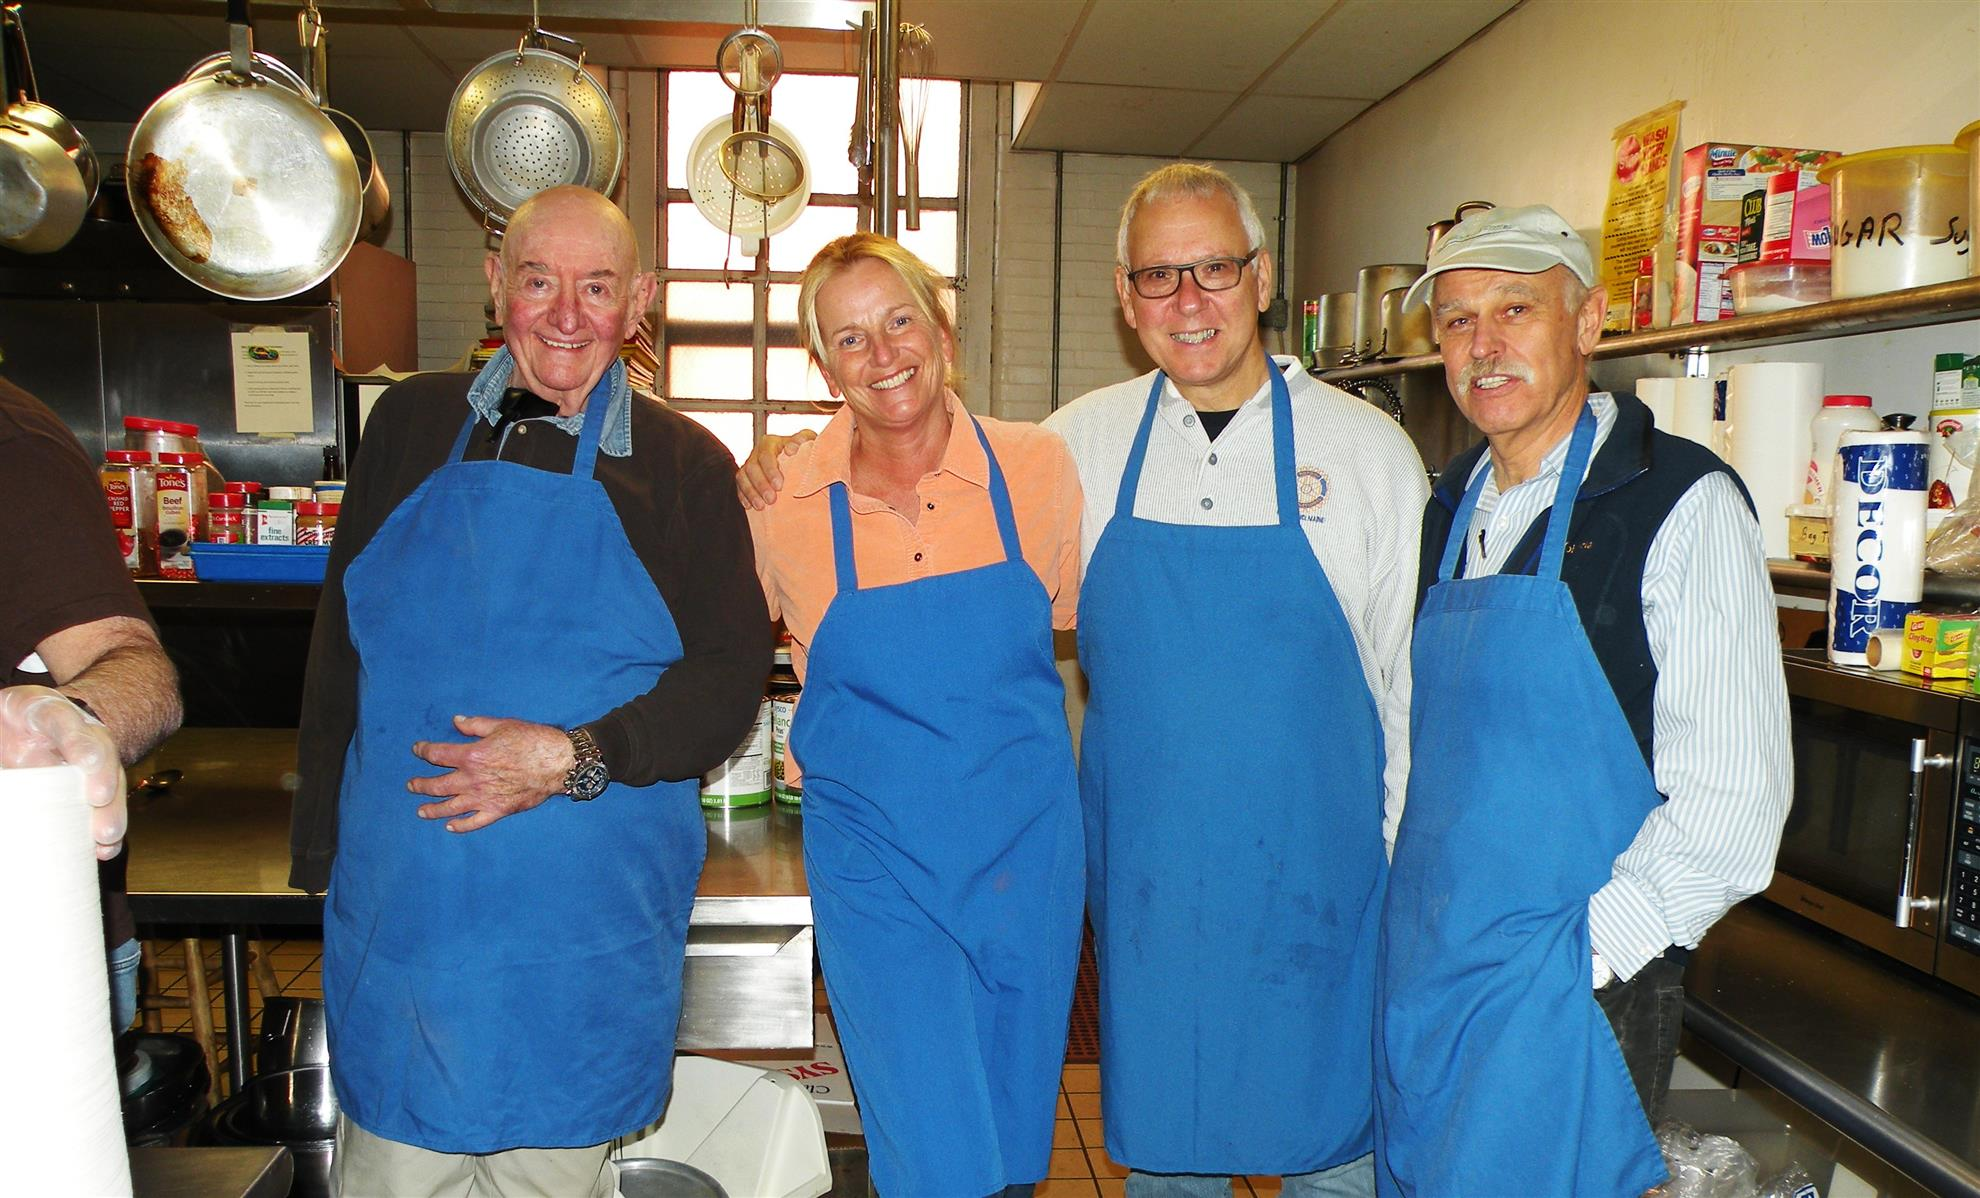 ... Amy Chipman, Mike Fortunato And Derek Greven Join The Volunteers Who  Annually Serve A Thanksgiving Lunch Meal At The St.. Vincent De Paul Soup  Kitchen ...